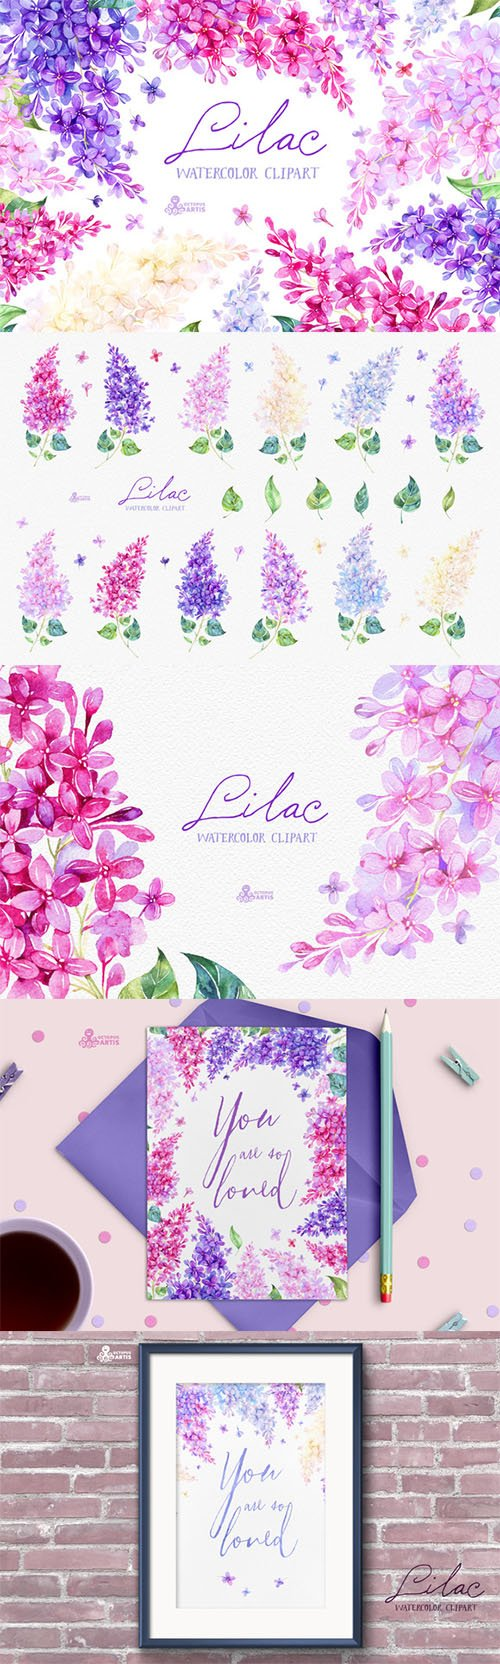 Lilac bathroom accessories